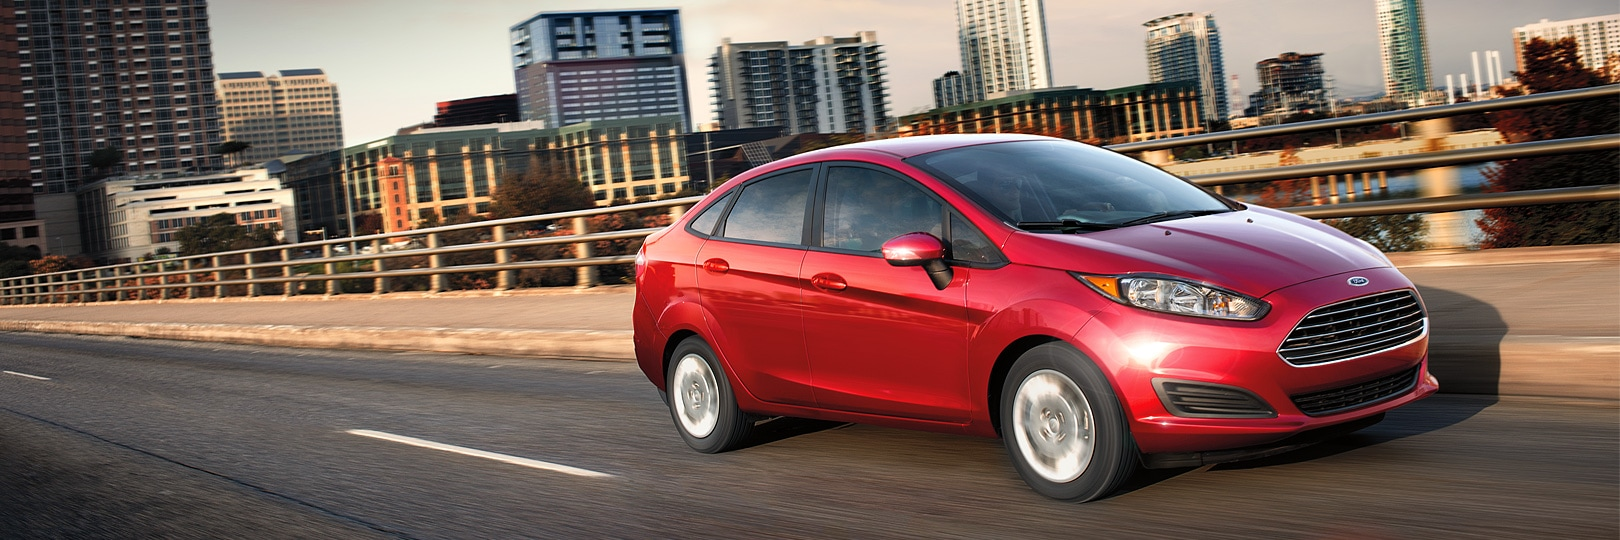 2017 Ford Fiesta Sedan for sale near Elyria, OH